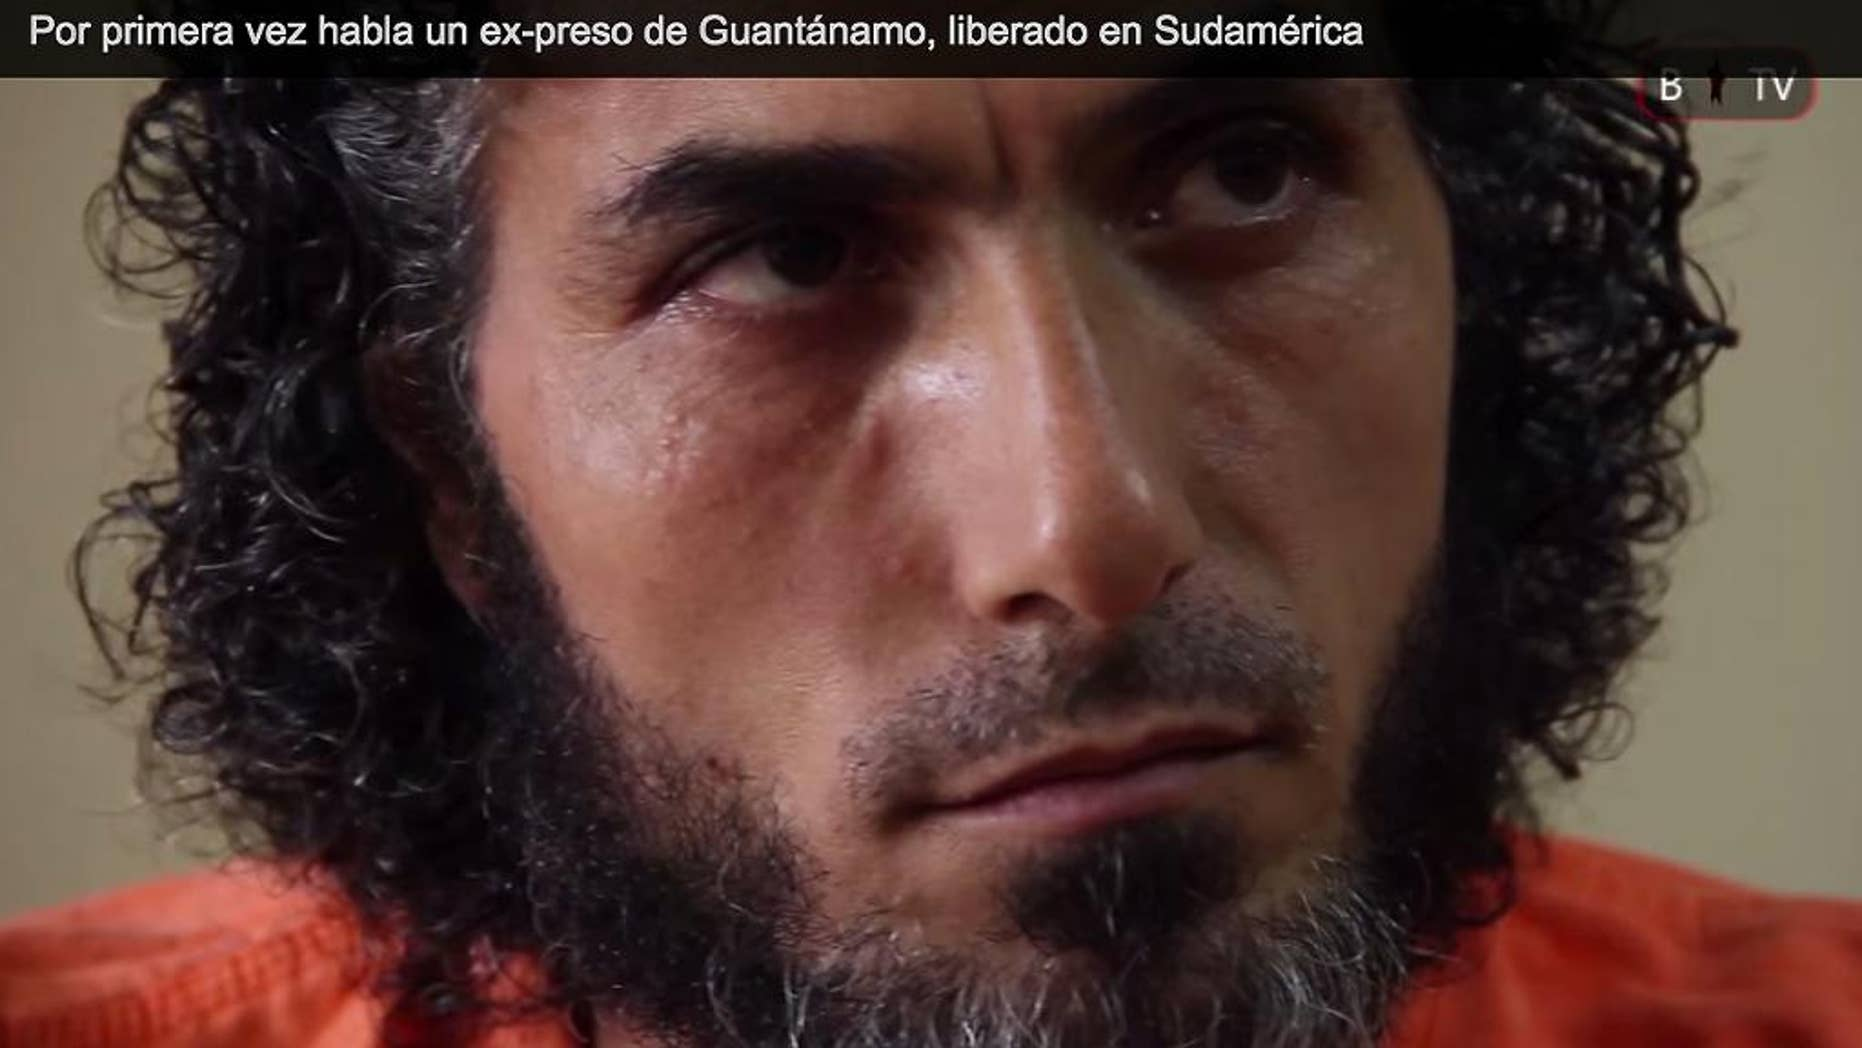 FILE - In this file photo of a frame grab from Barricada TV, recorded on Feb. 11, 2015, Abu Wa'el Dhiab, one of the Syrian refugees released from Guantanamo and now living in Uruguay, speaks during an interview, in Buenos Aires, Argentina. Dhiab, who led hunger strikes as a detainee and was resettled in Uruguay along with five other ex-inmates, is requesting a meeting with Uruguay's foreign minister to talk about the men's future. The men were resettled in Uruguay in December 2014. (AP Photo/Barricada TV, File)